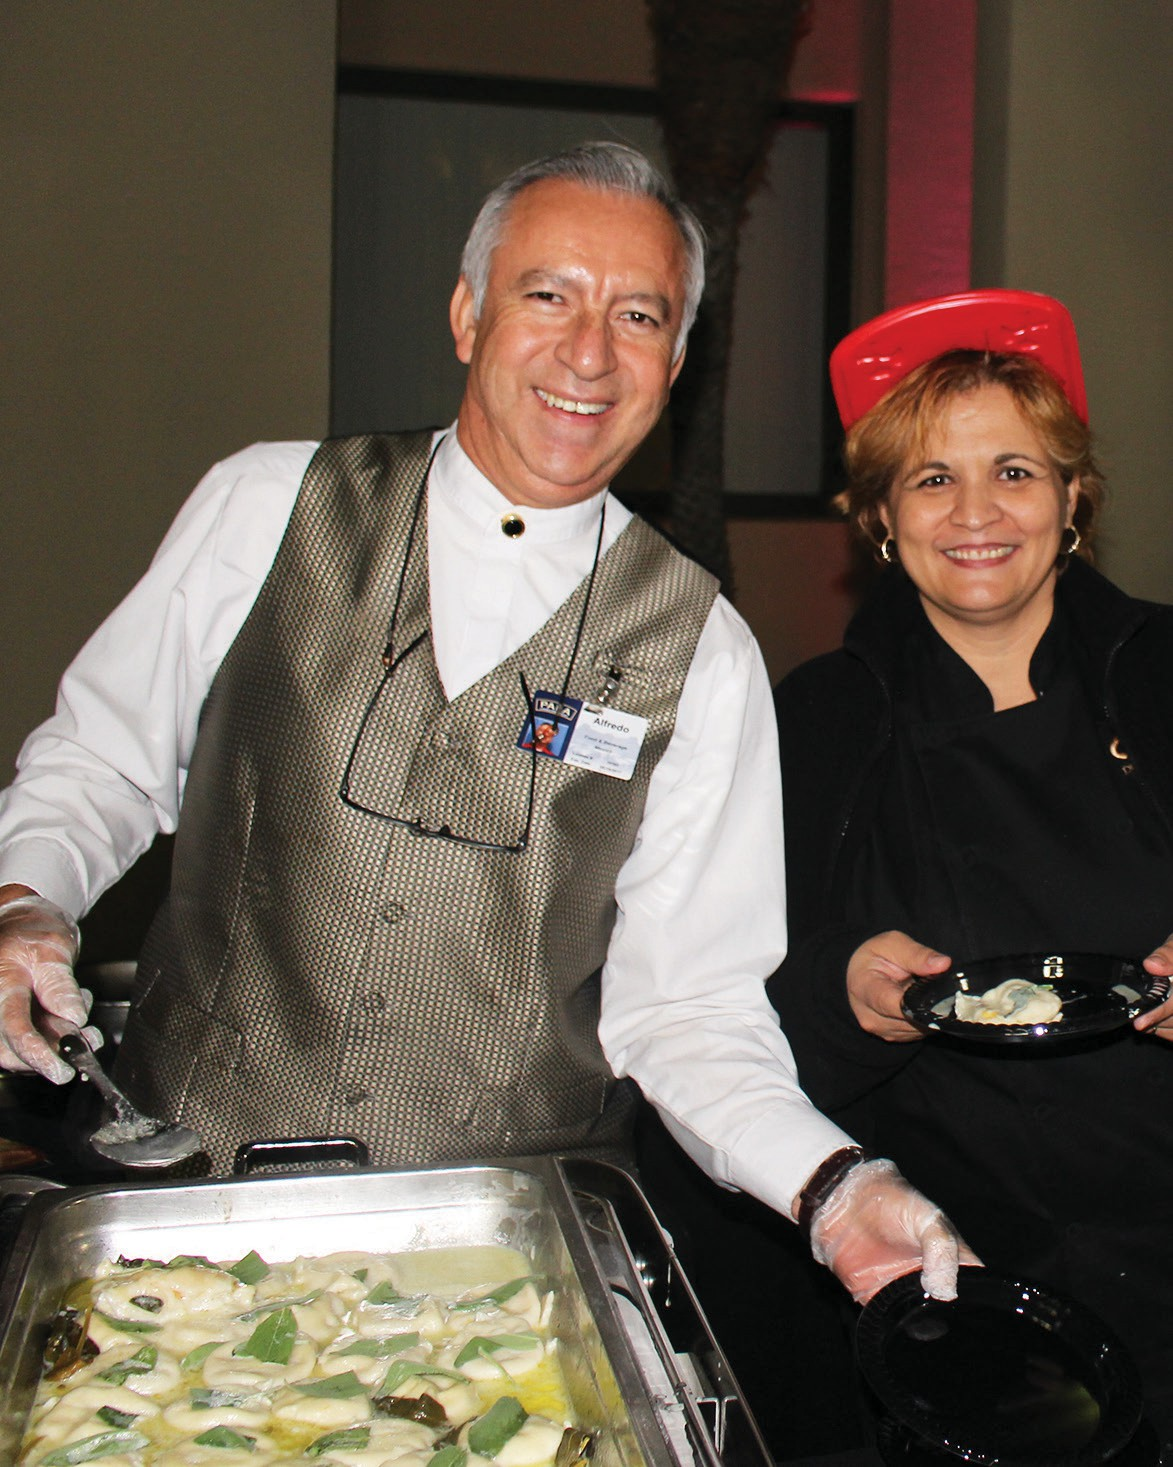 Above: The crew from Pala Casino served succulent squash ravioli.